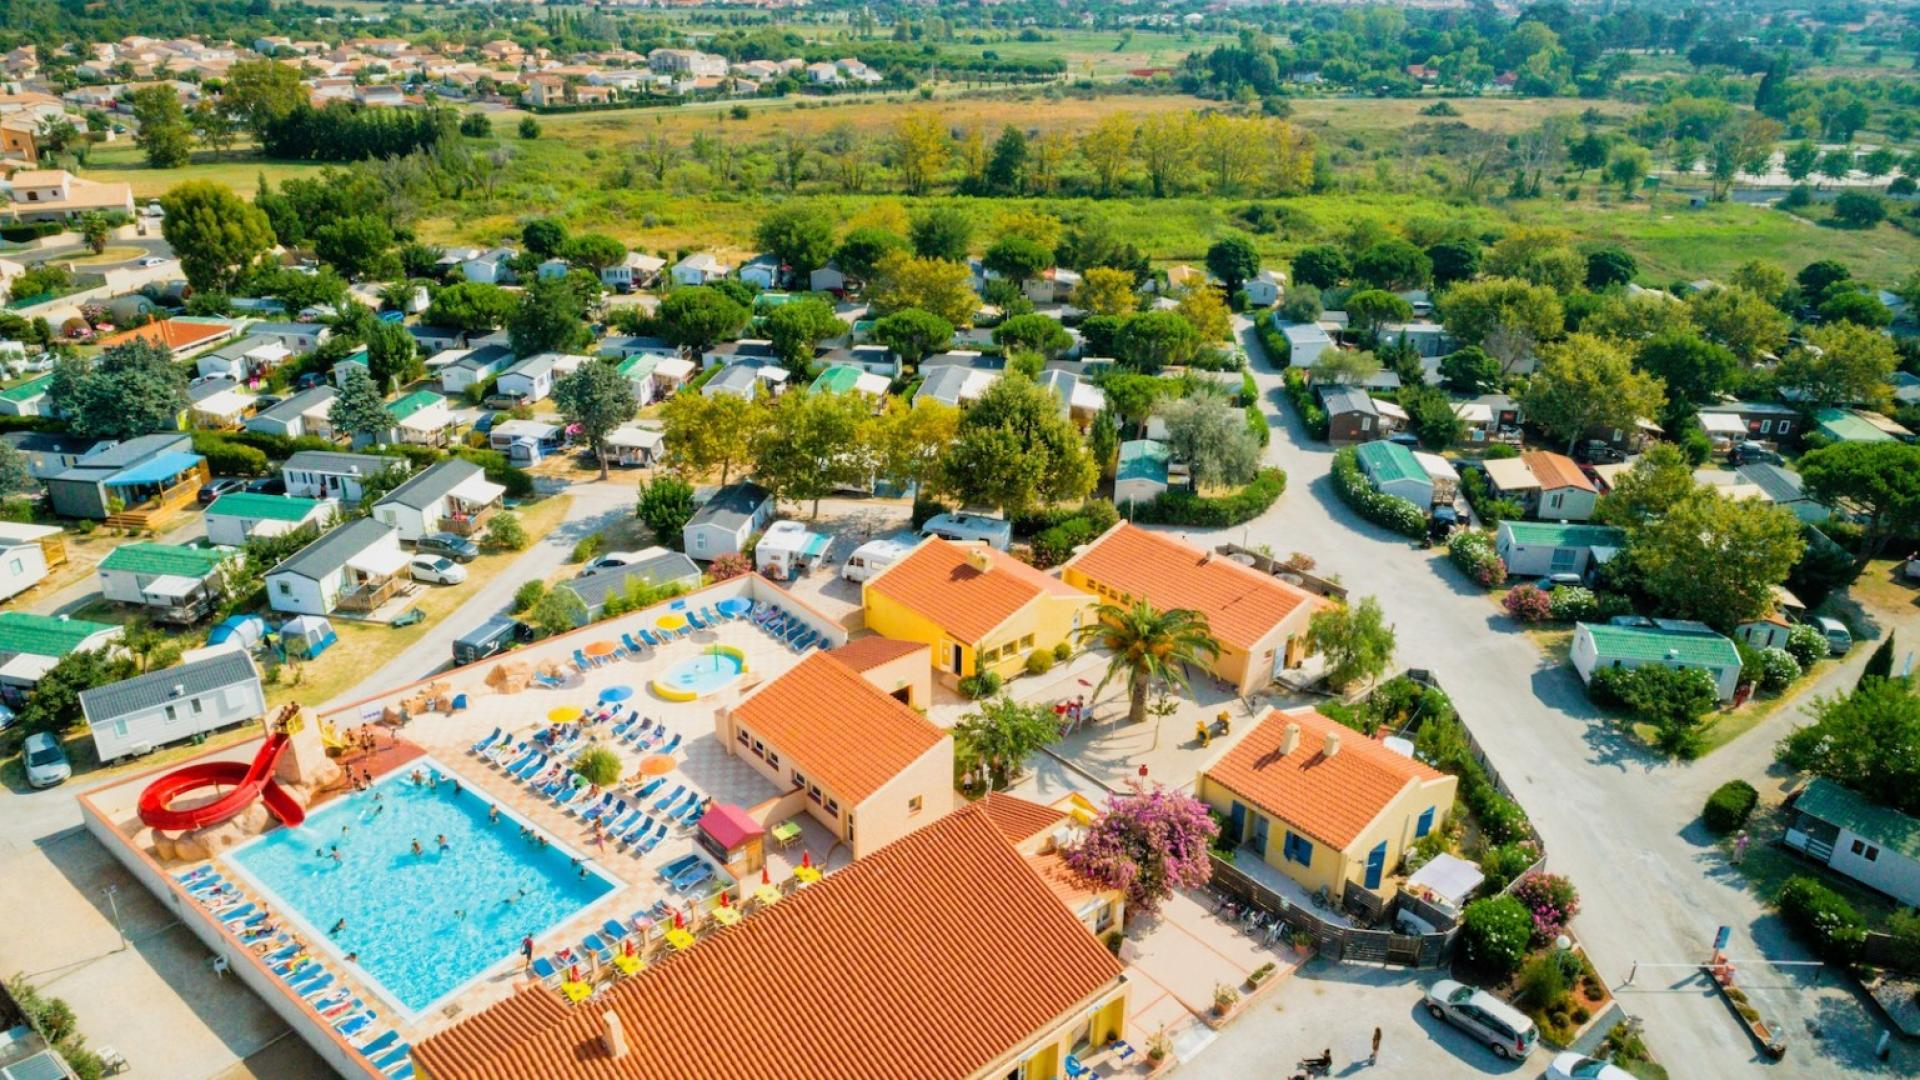 CAMPING CHADOTEL LE ROUSSILLON